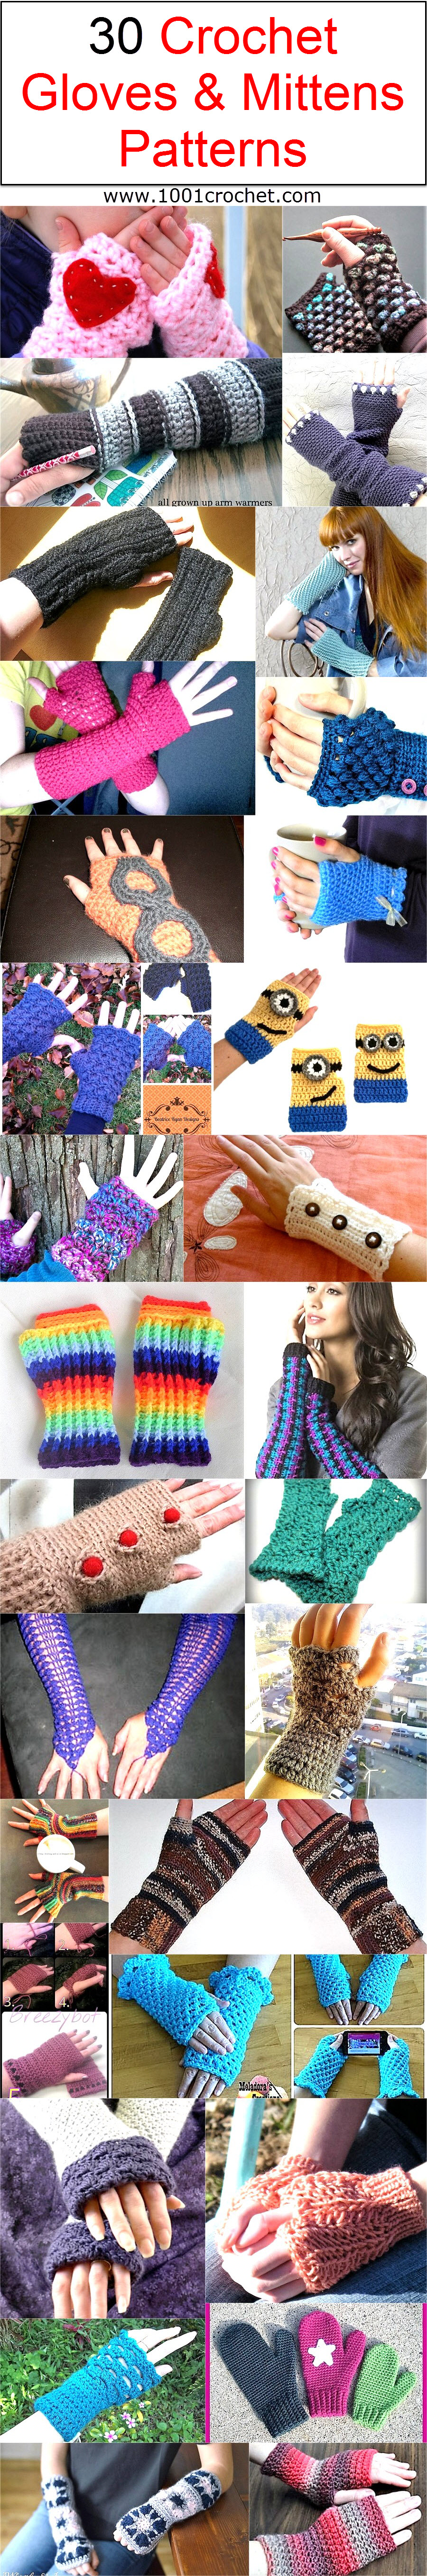 30-crochet-gloves-mittens-patterns